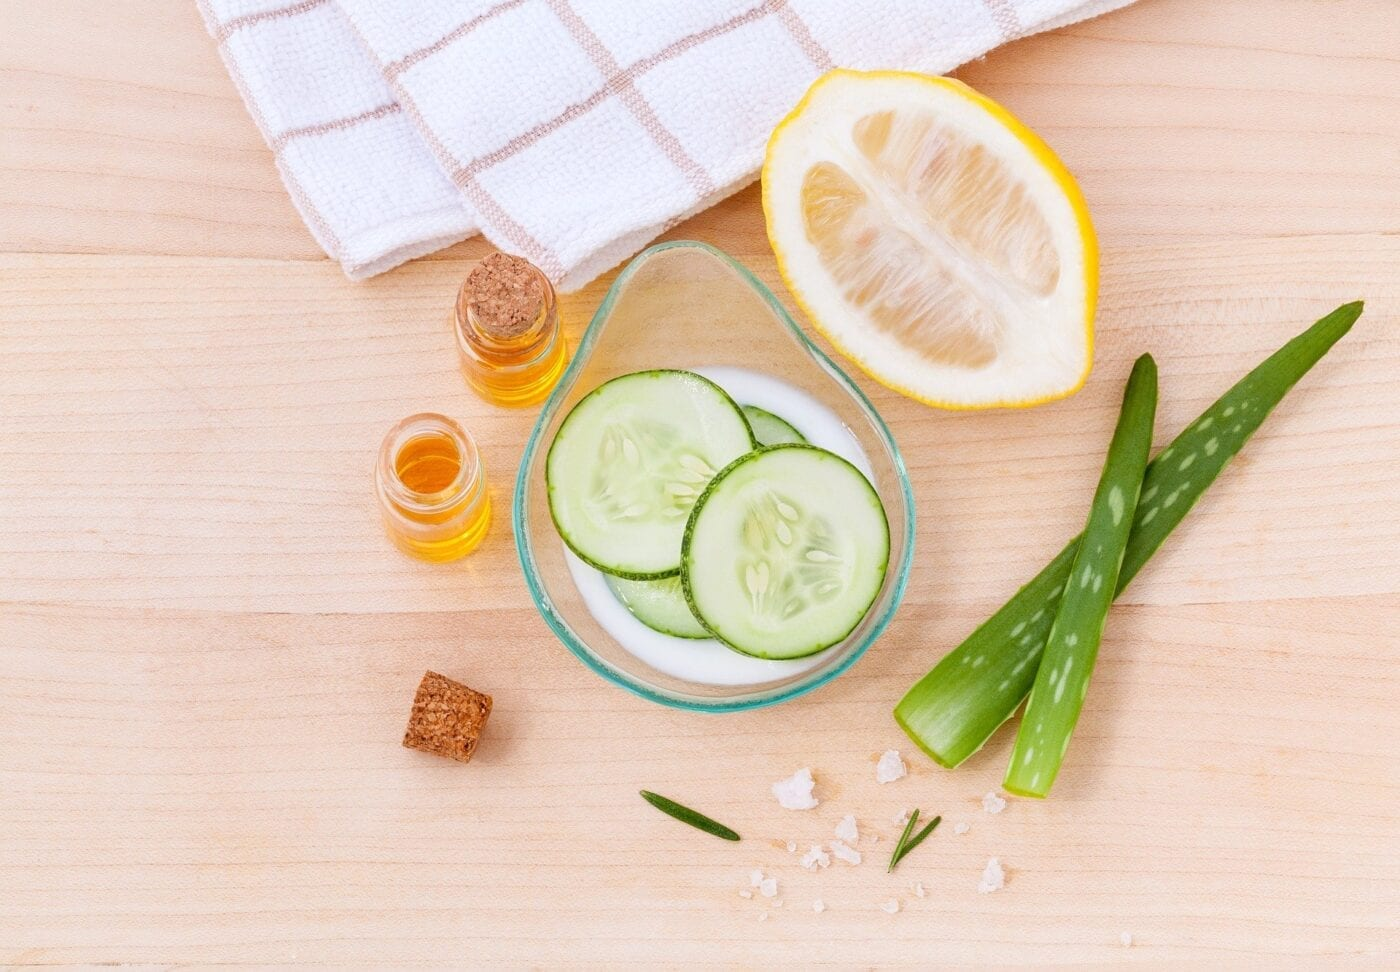 Inexpensive and organic body care and cosmetics